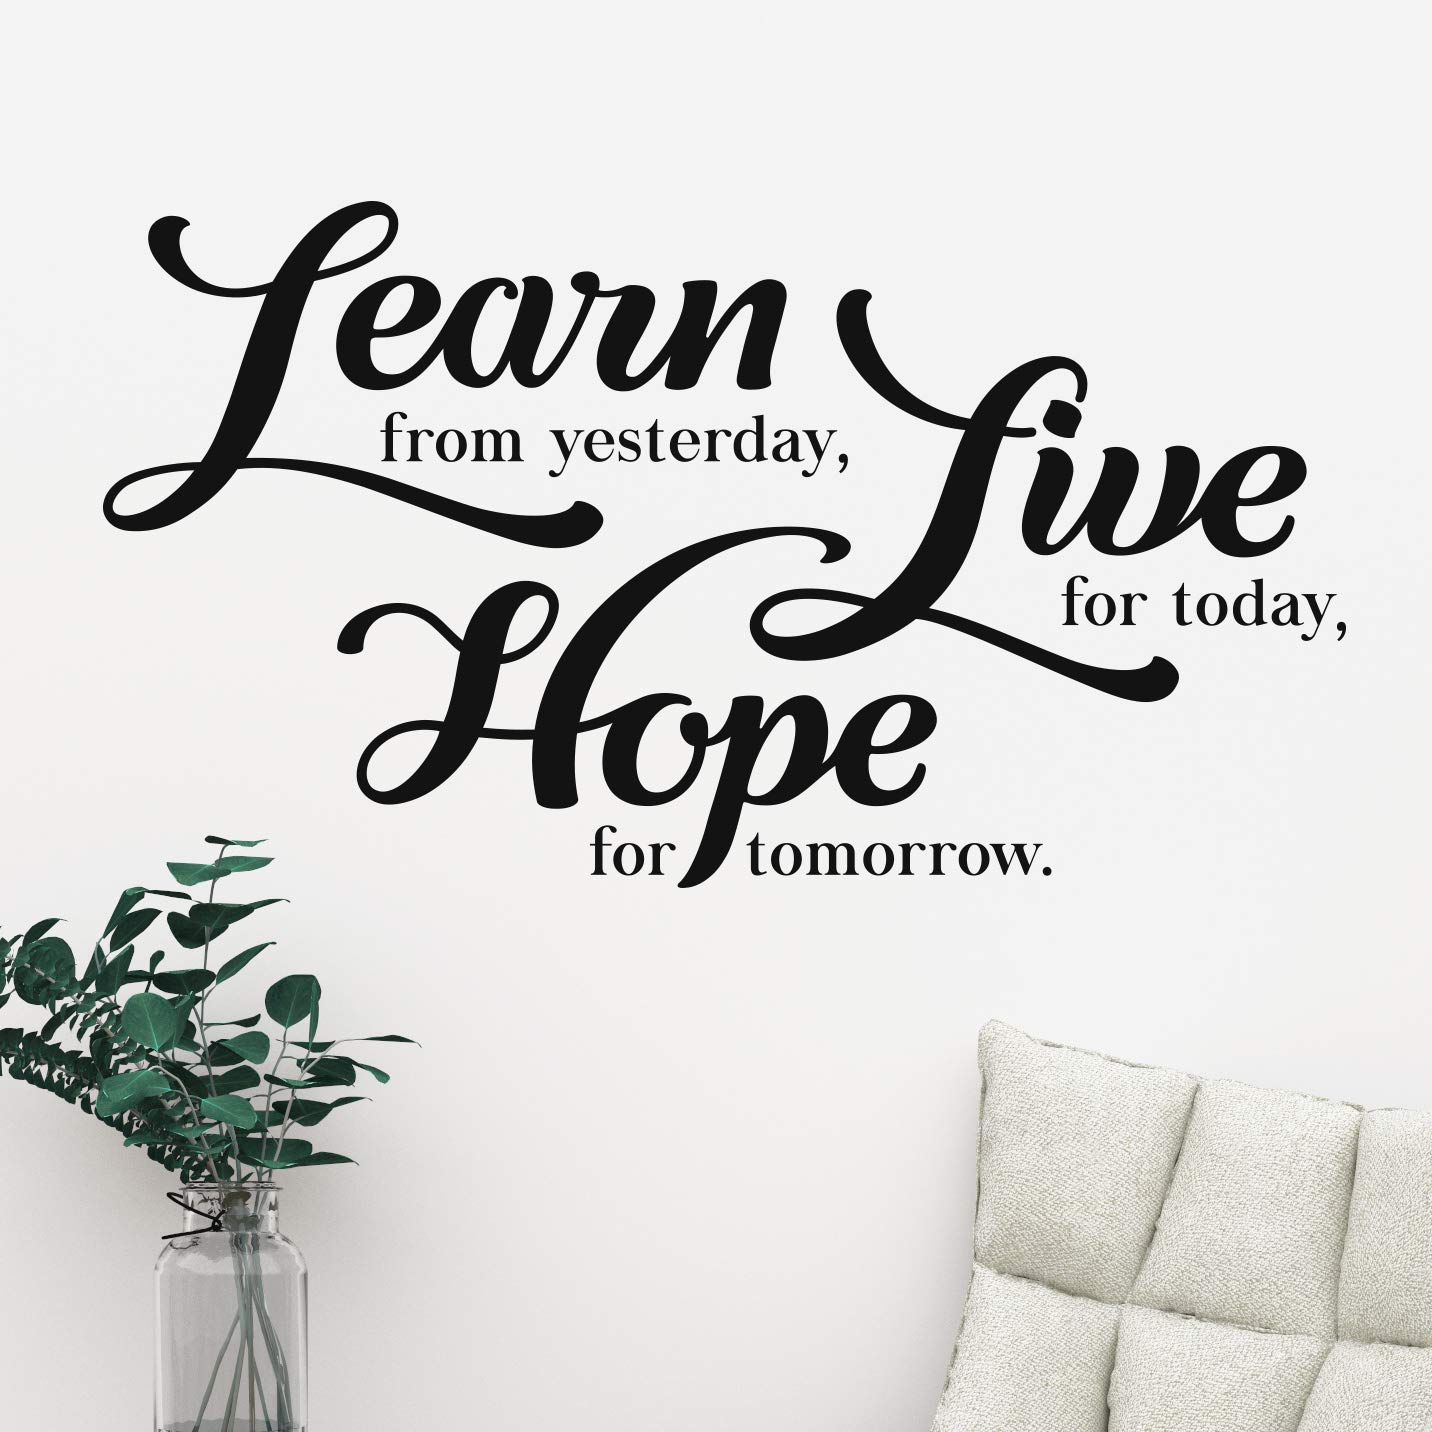 Hope for Tomorrow Live for Today Learn Live Hope Mur Citation Motivational Home Wall Decor Vinyle Autocollant Decal Mural Art Inspire Learn from Yesterday